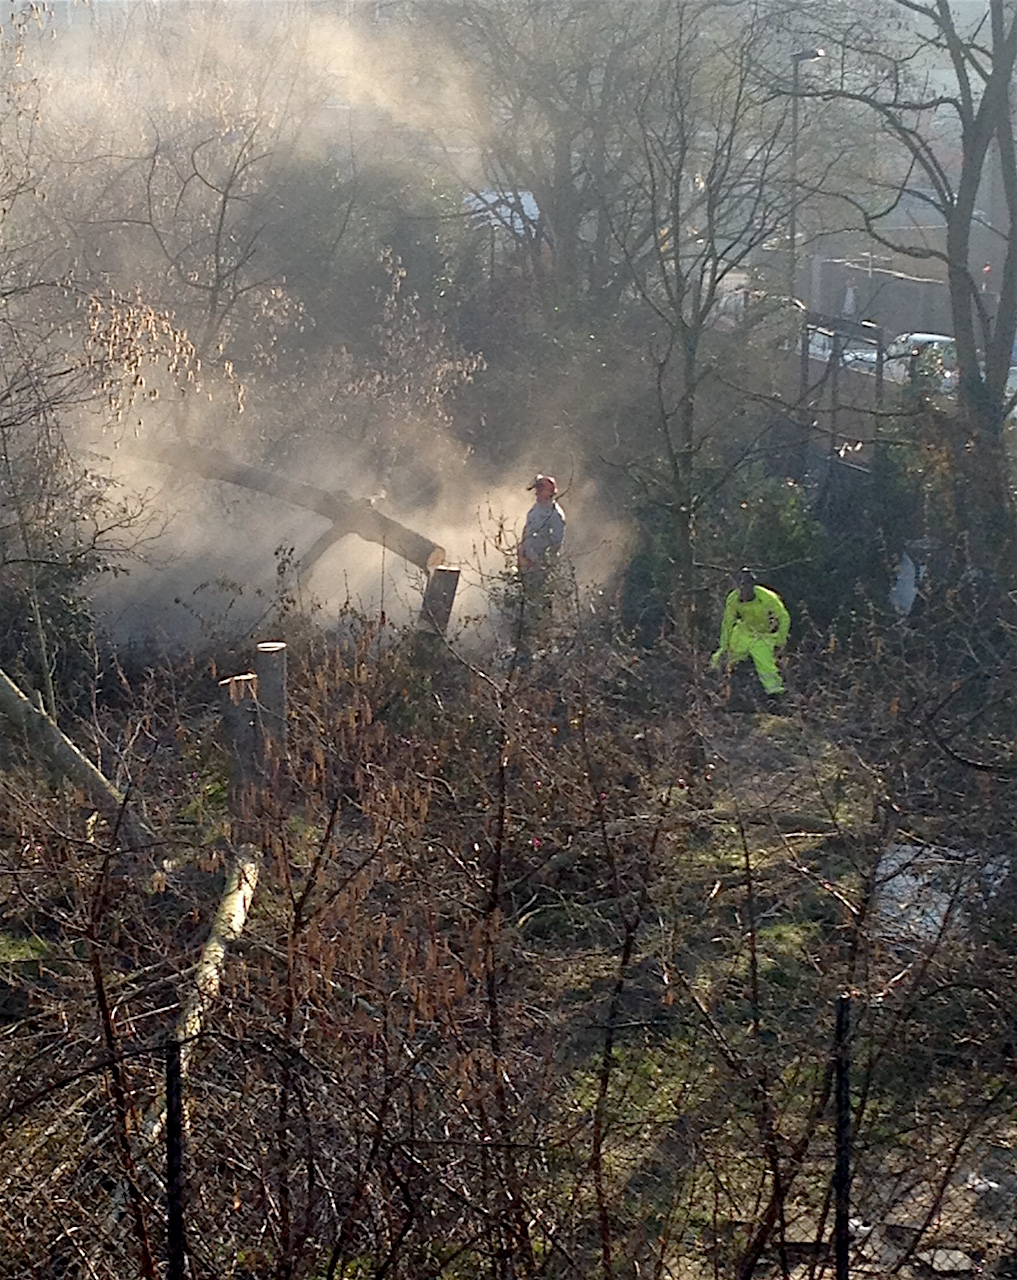 The destruction of the Old Tidemill Wildlife Garden on February 27, 2019 (photo by David Aylward).